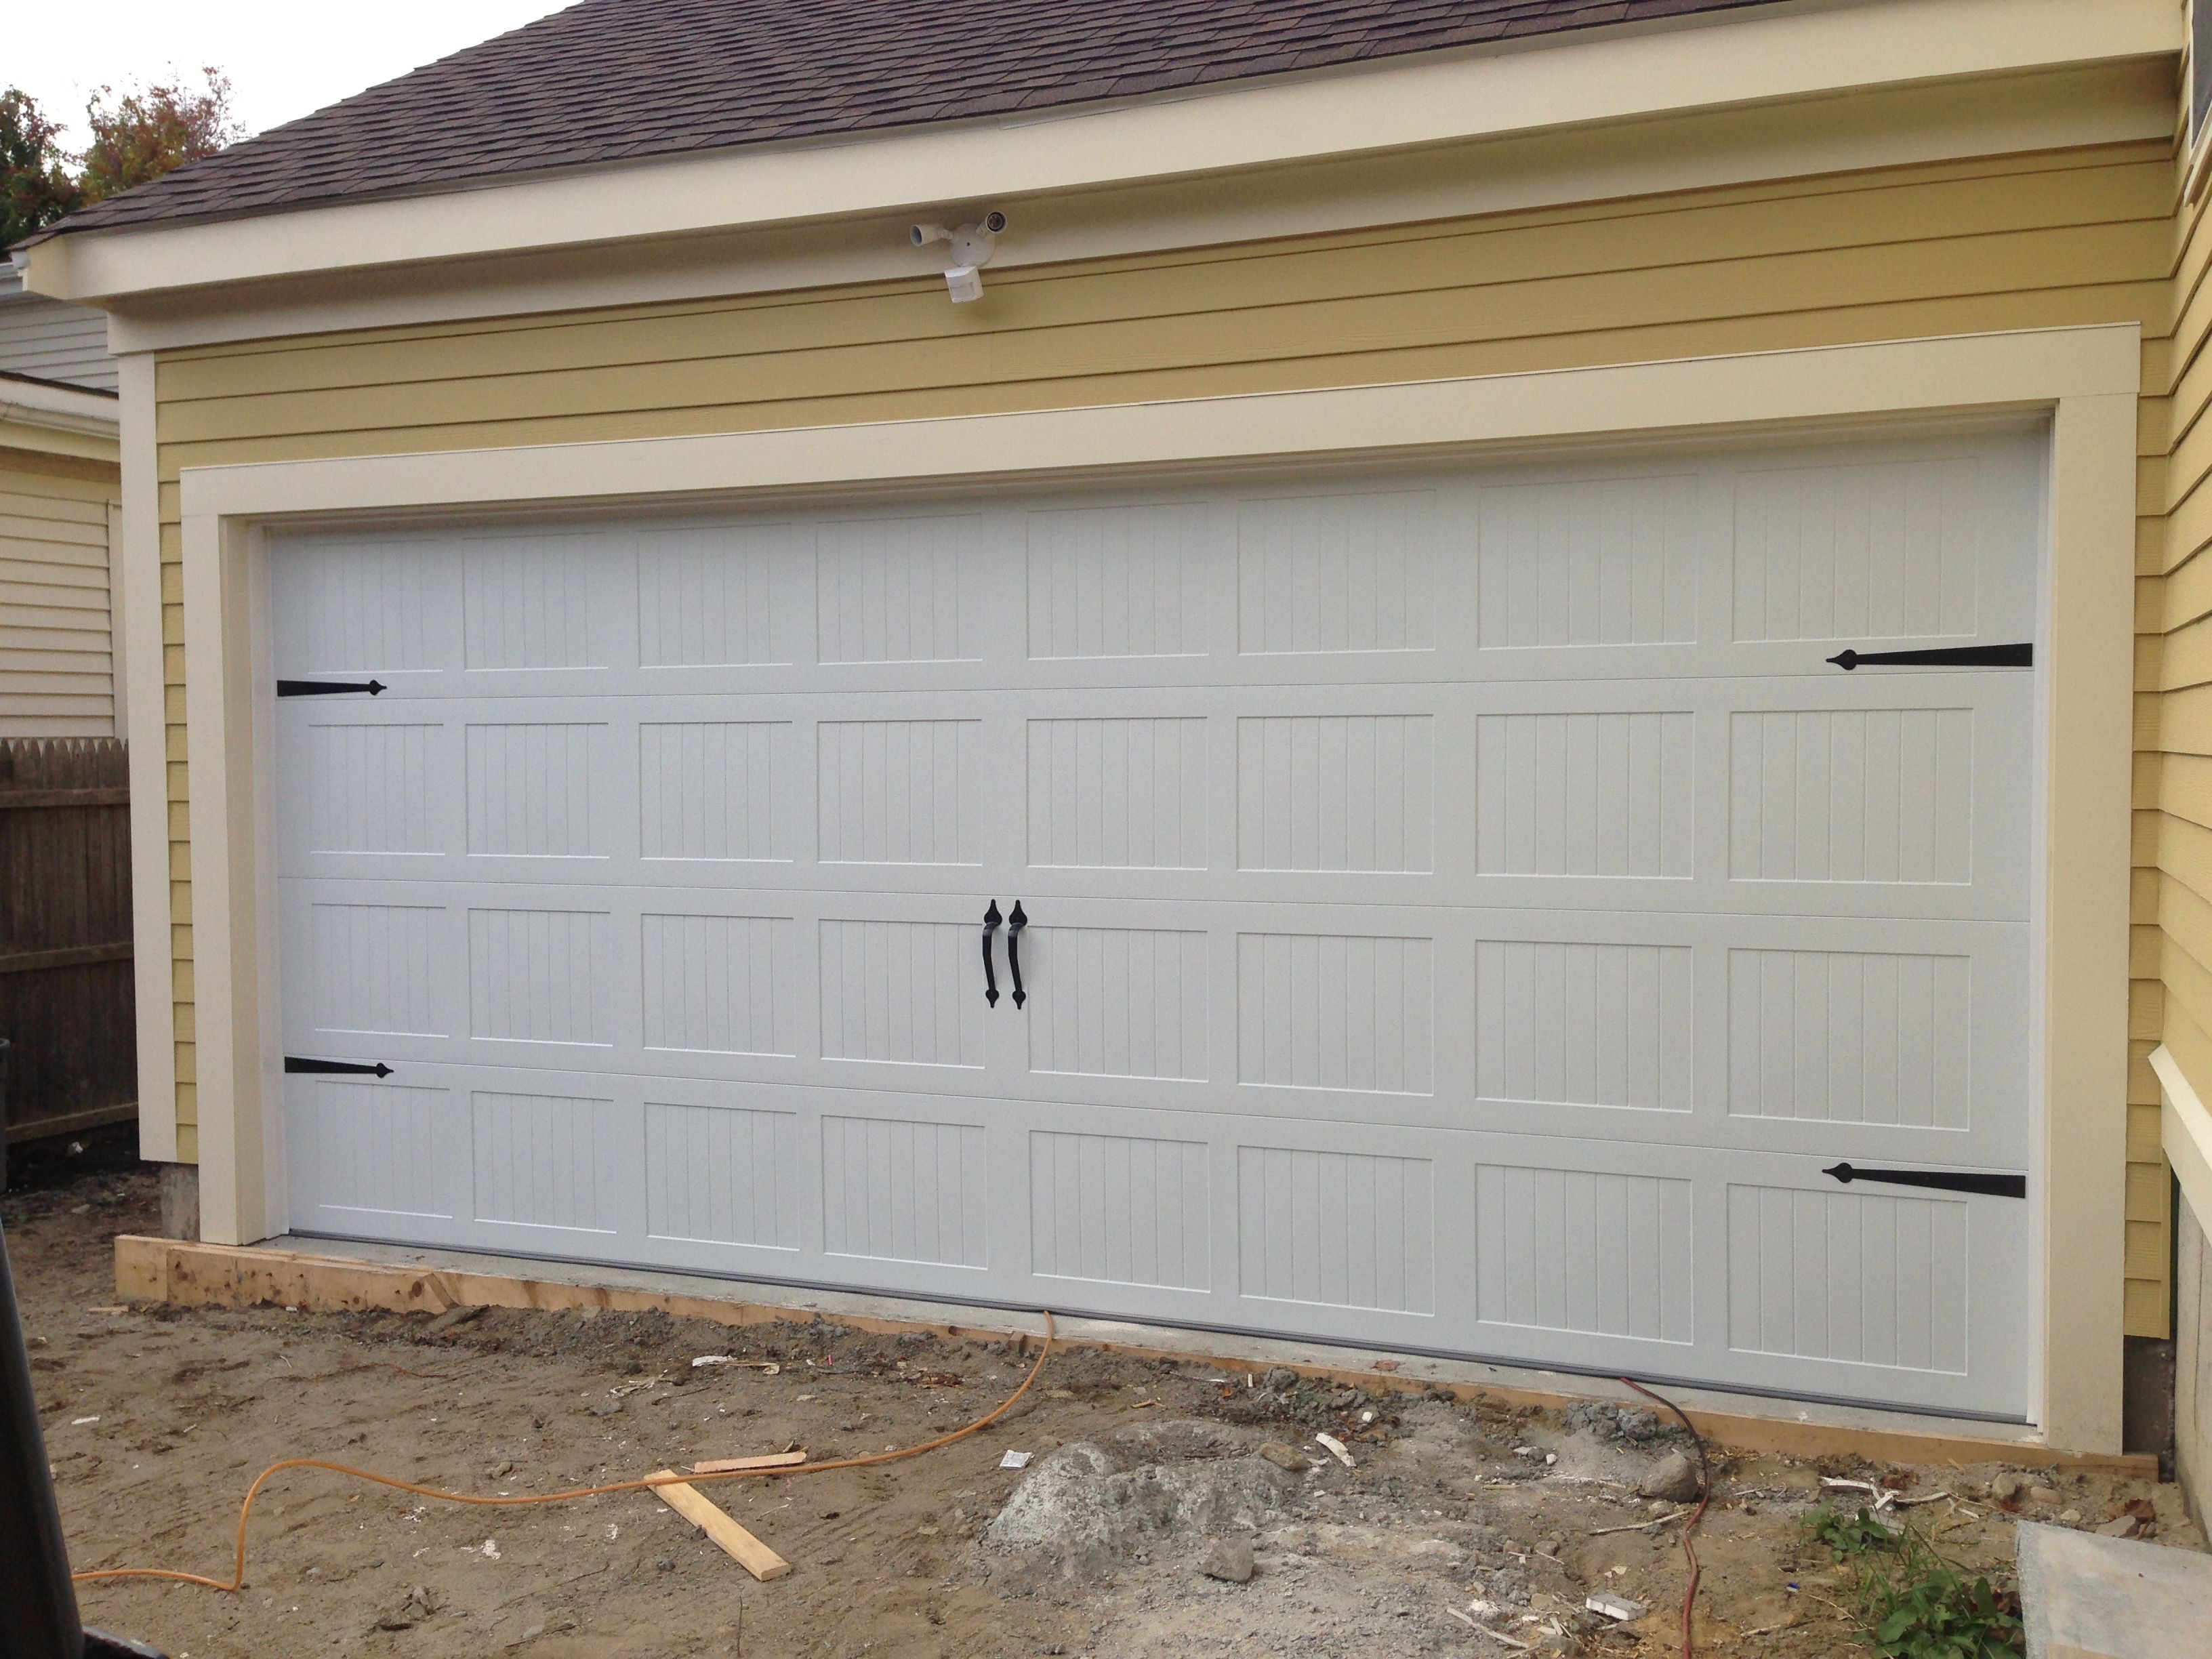 Carriage House Garage Doors Carriage Style Garage Doors Carriage House Garage Doors Carriage House Garage